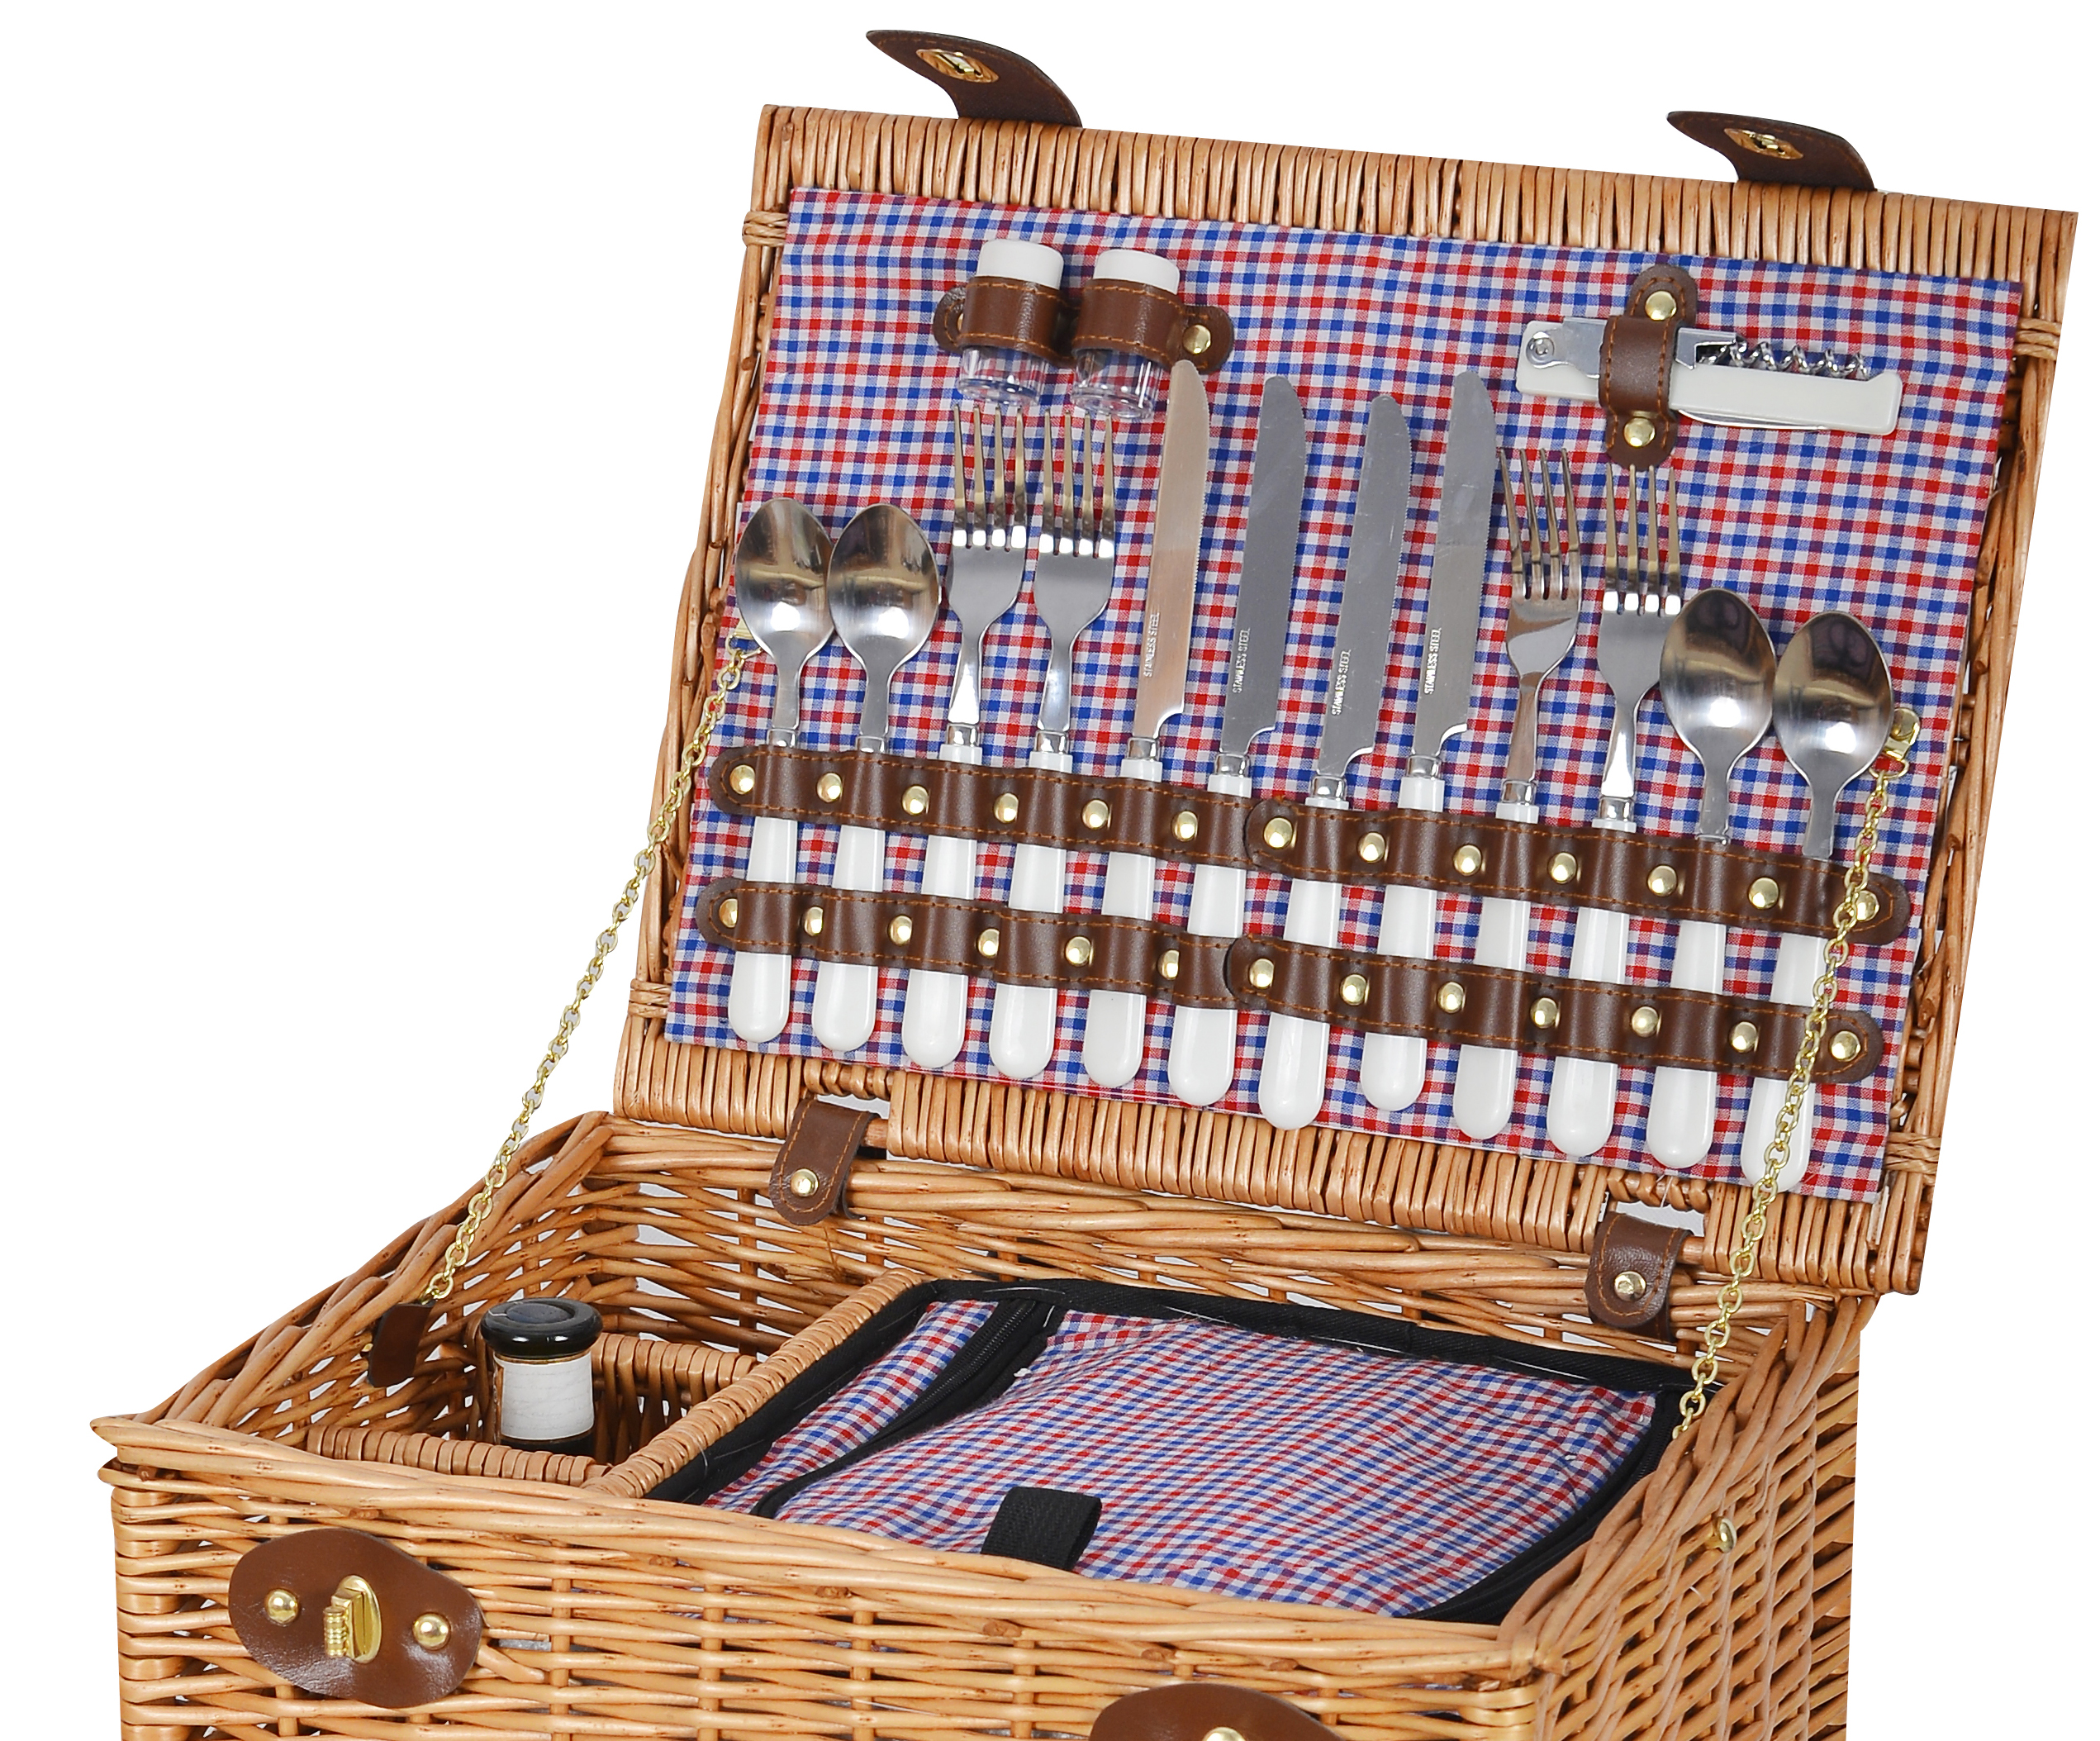 4 Person Picnic Basket Uk : Vivo luxury person english wicker willow picnic basket